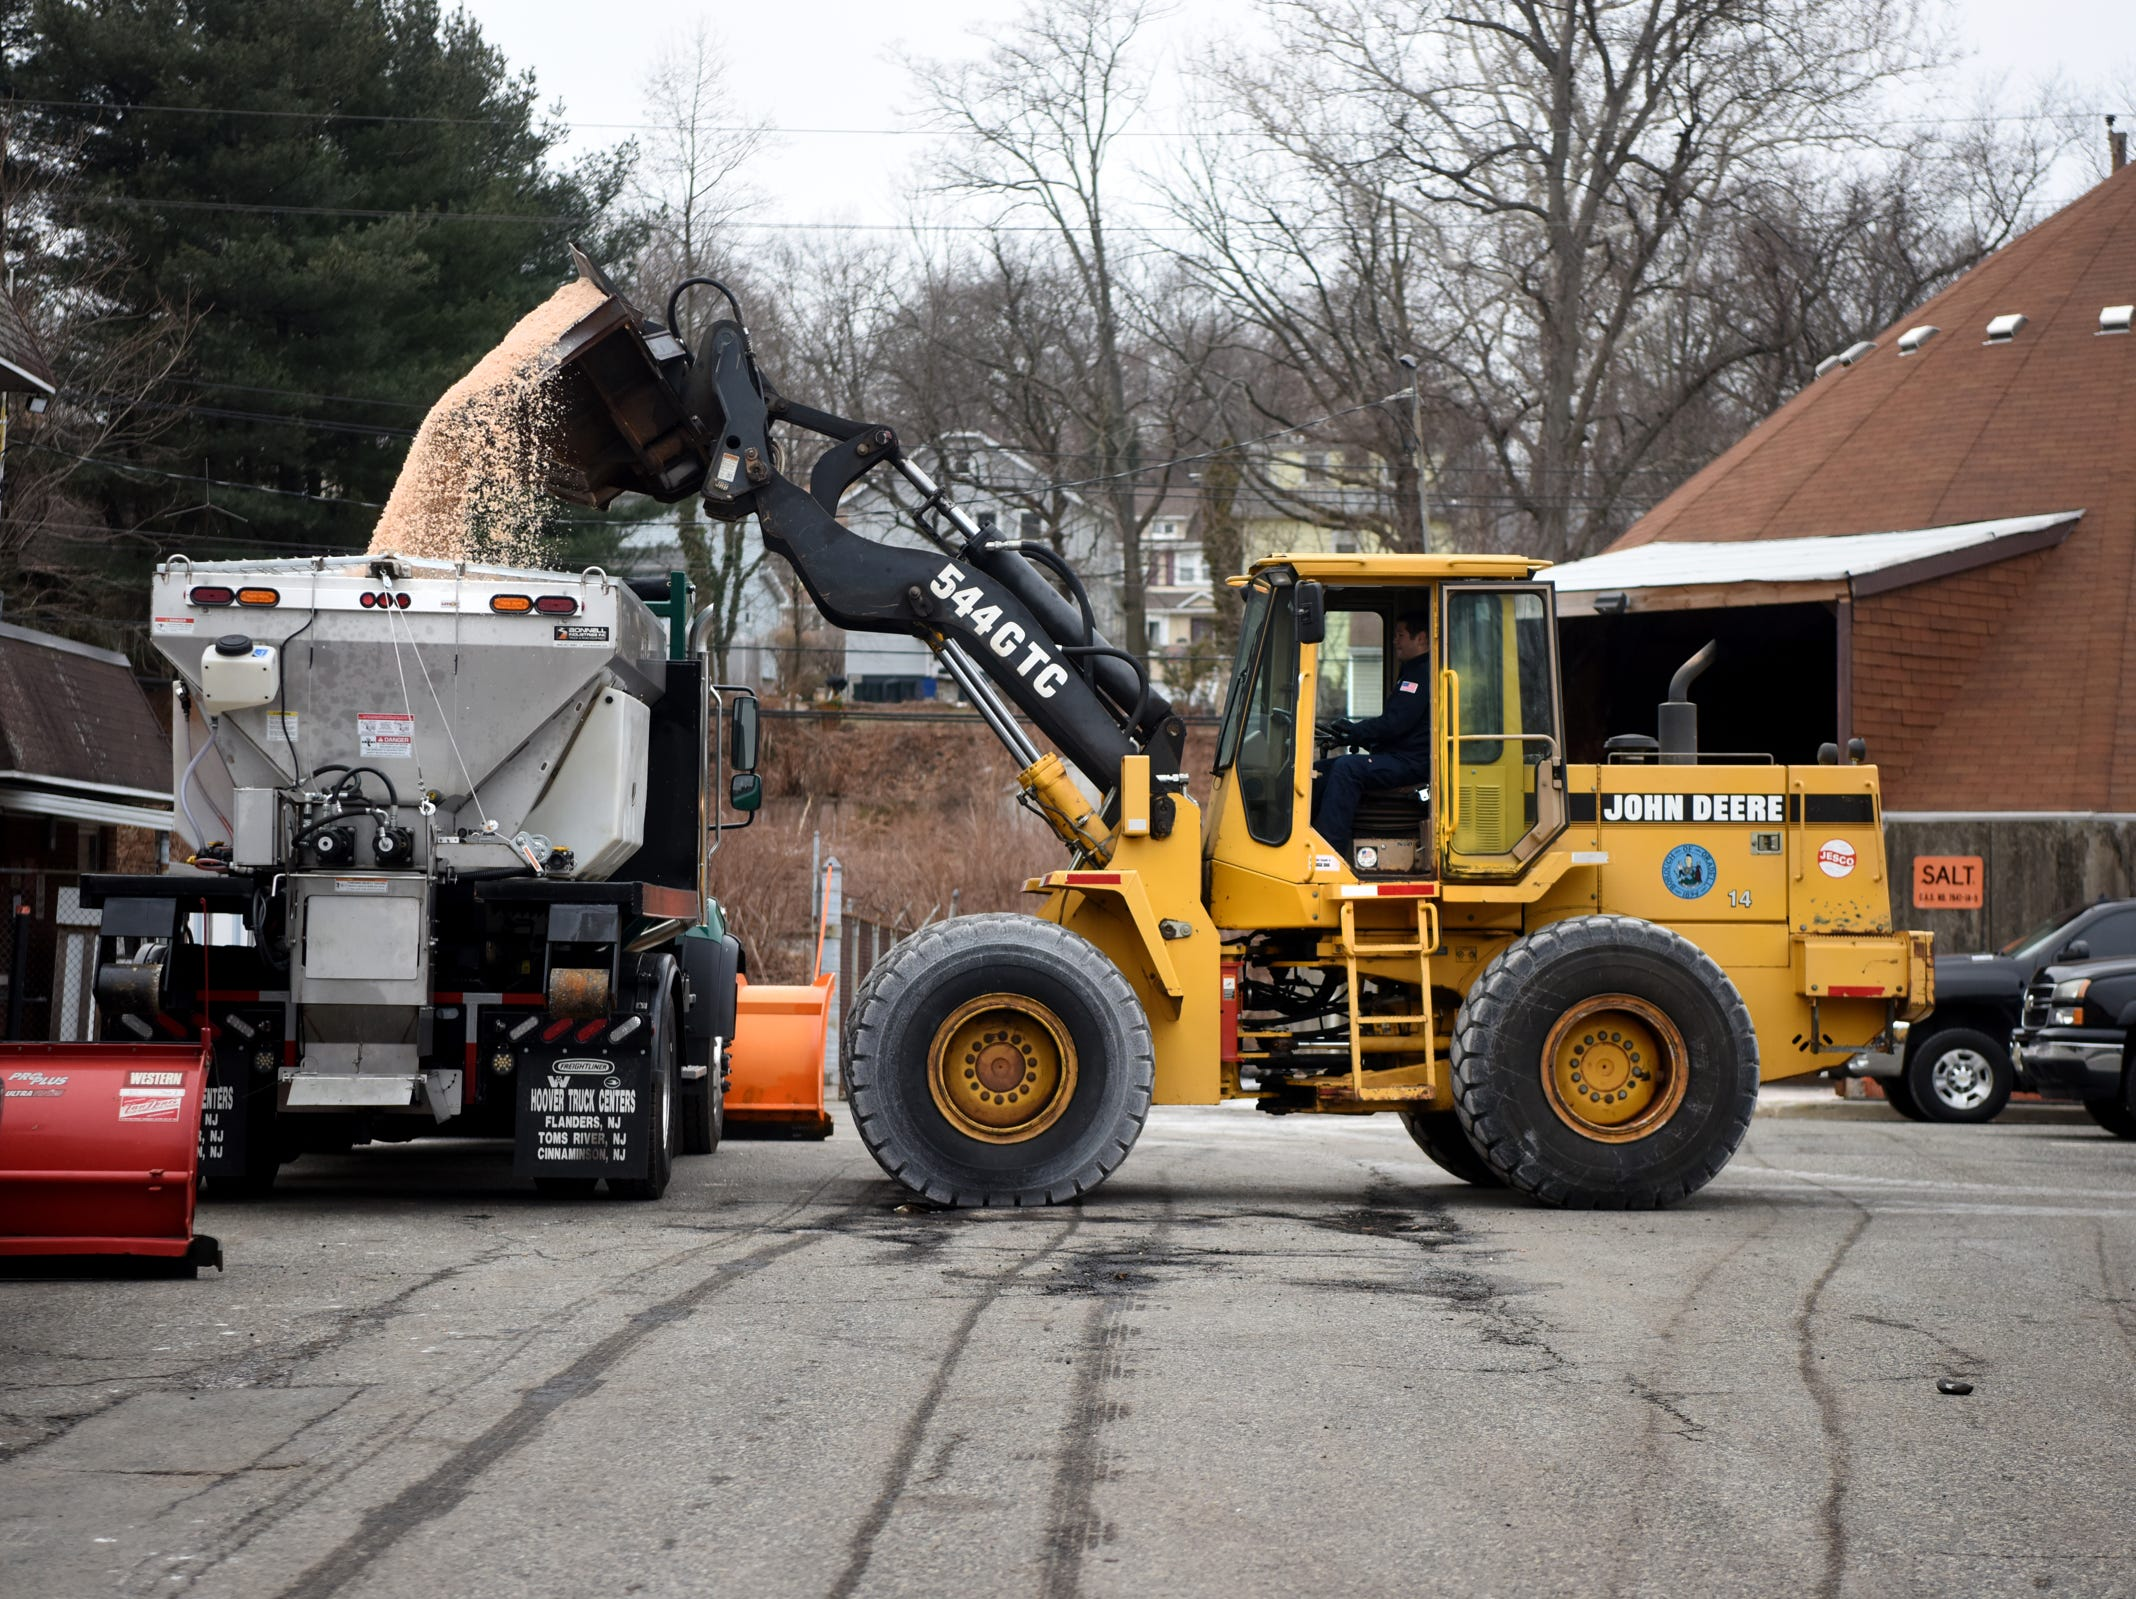 Borough of Oradell Department of Public Works employee Ross Rhein fills a snow plow with salt on Monday, February 11, 2019 in preparation for a winter storm that could bring snow, ice and freezing rain on Tuesday.